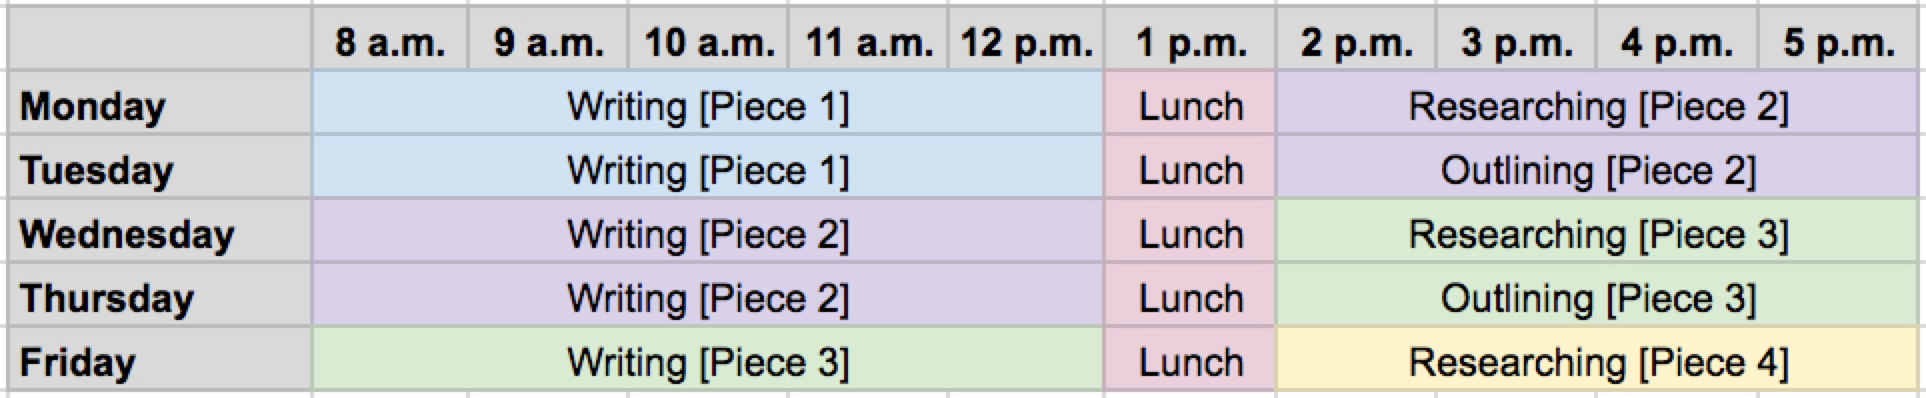 Schedule in a spreadsheet